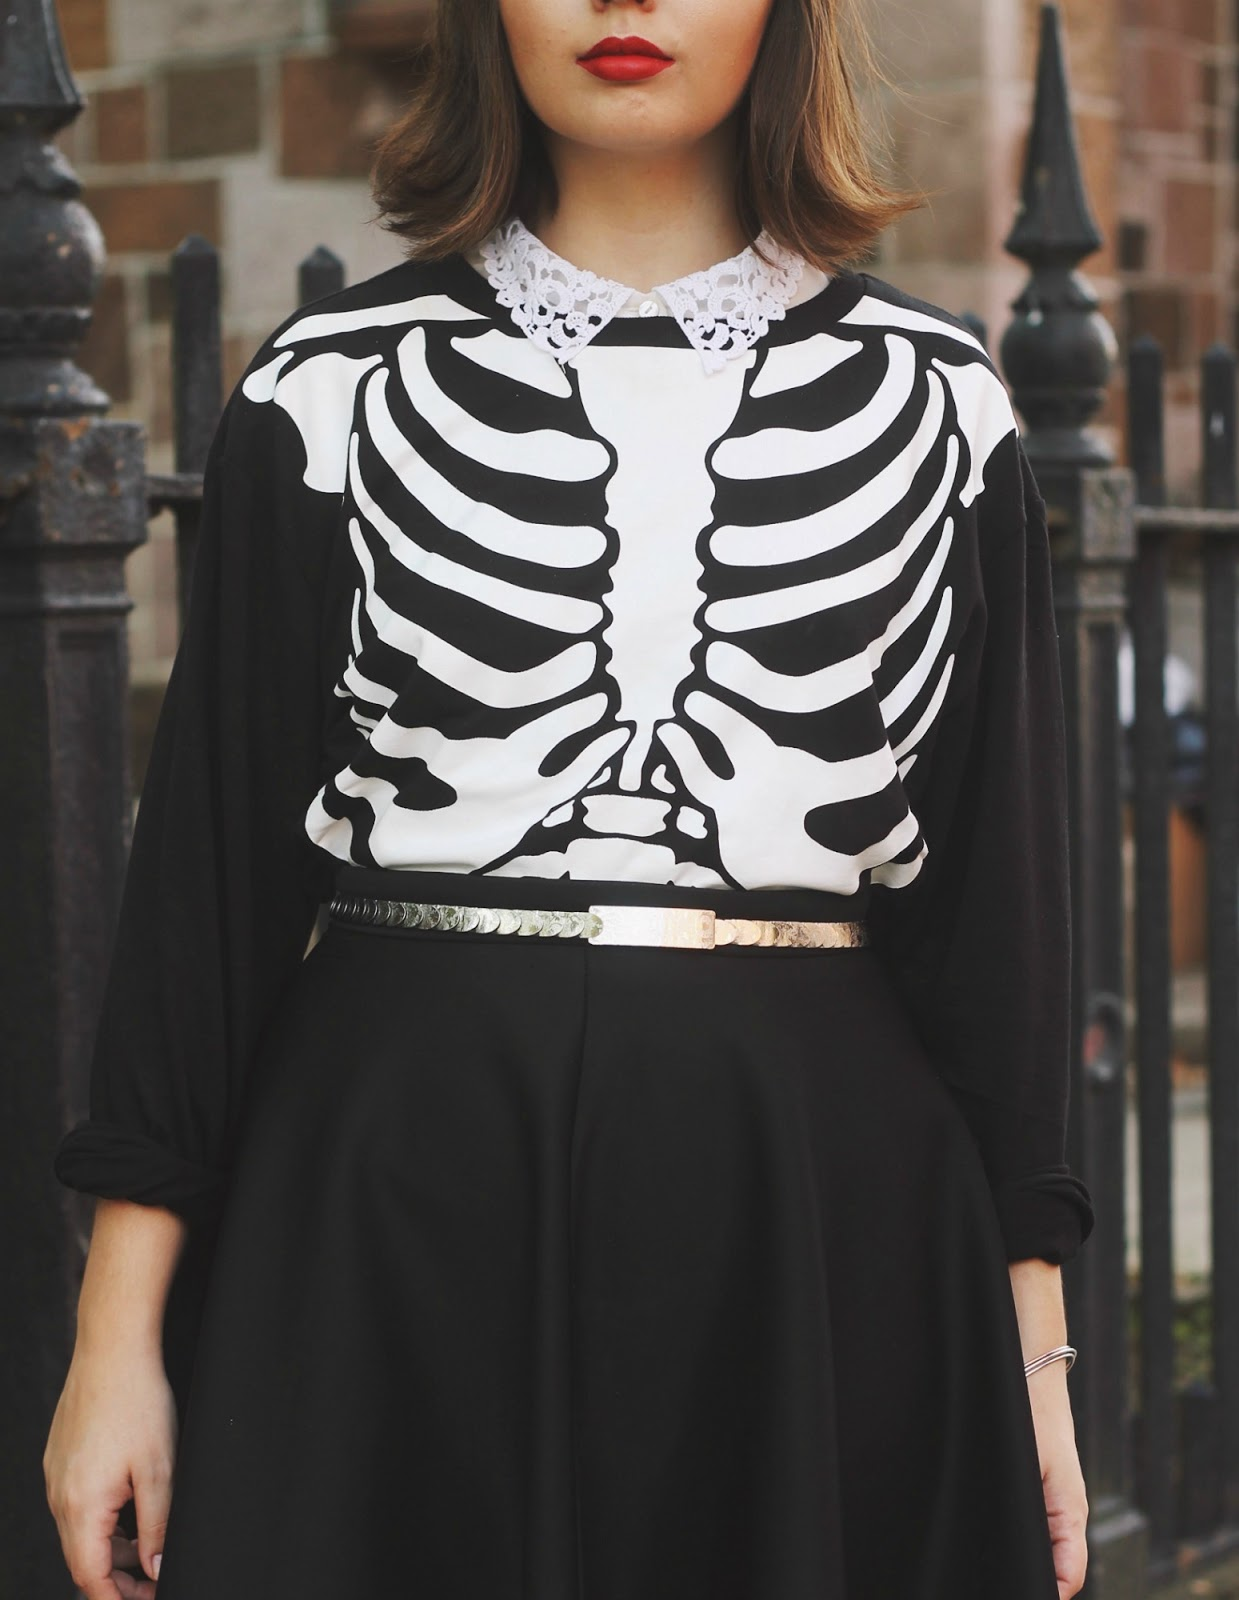 DIY Skeleton Costume Girl | Someone Like You